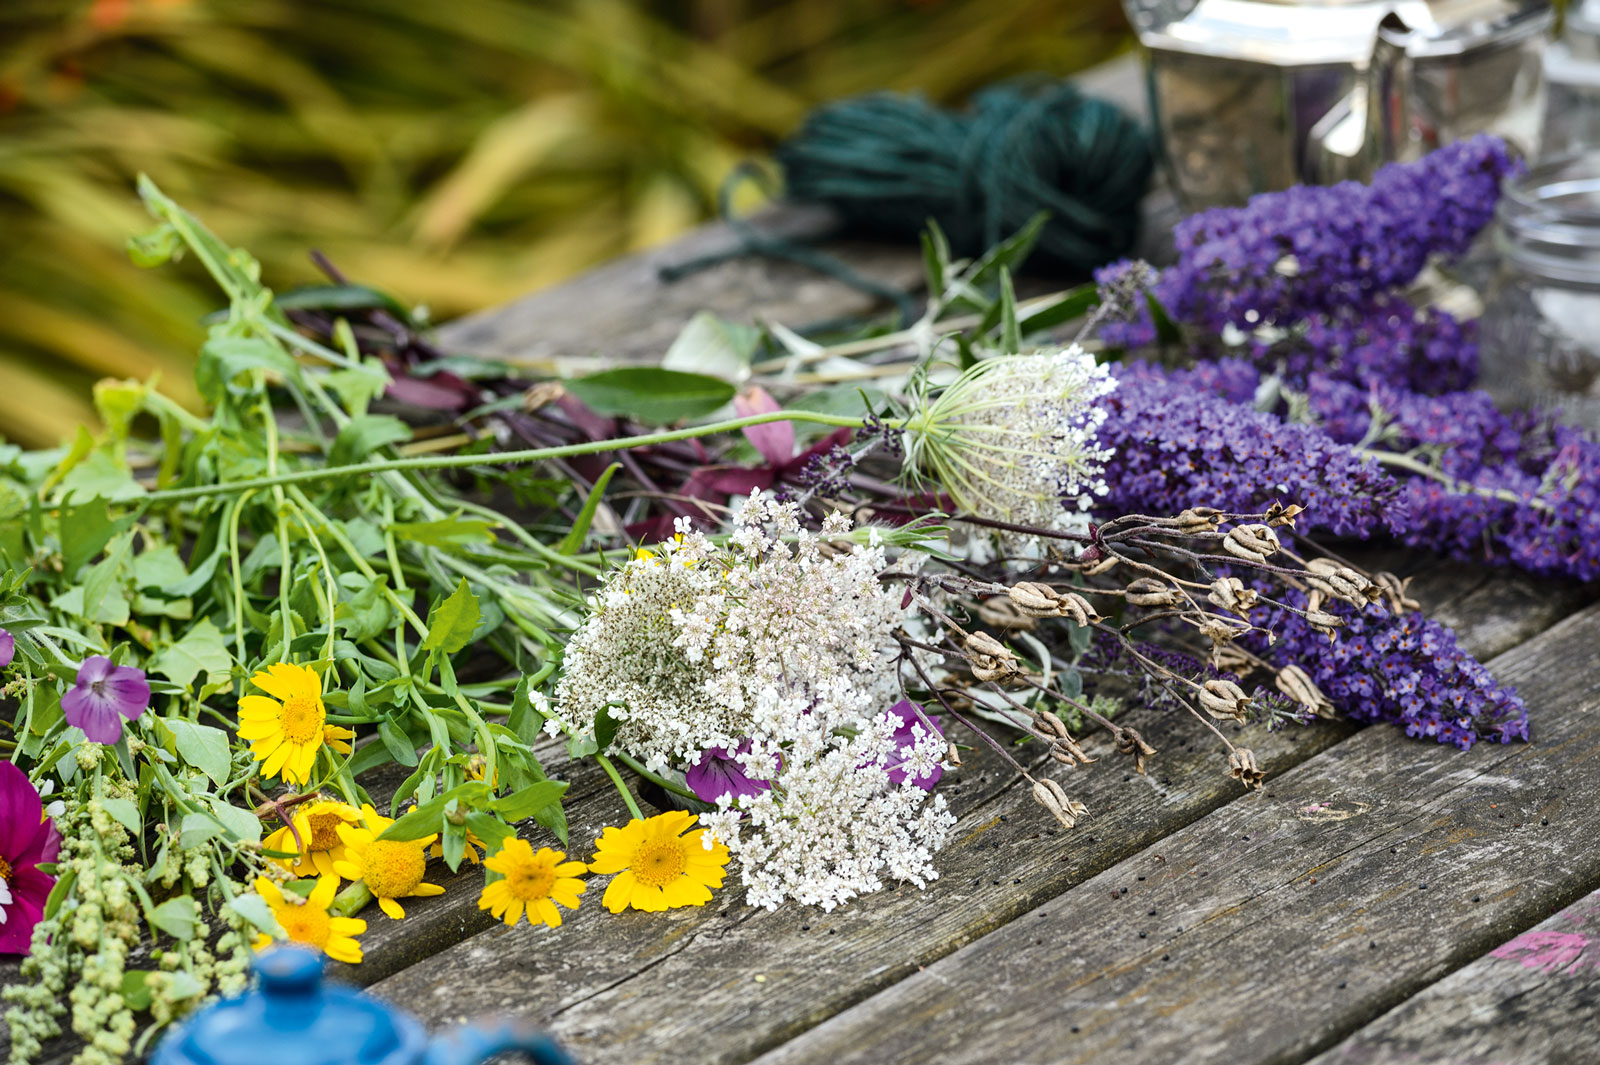 Garden guide: How to grow your own cut flowers